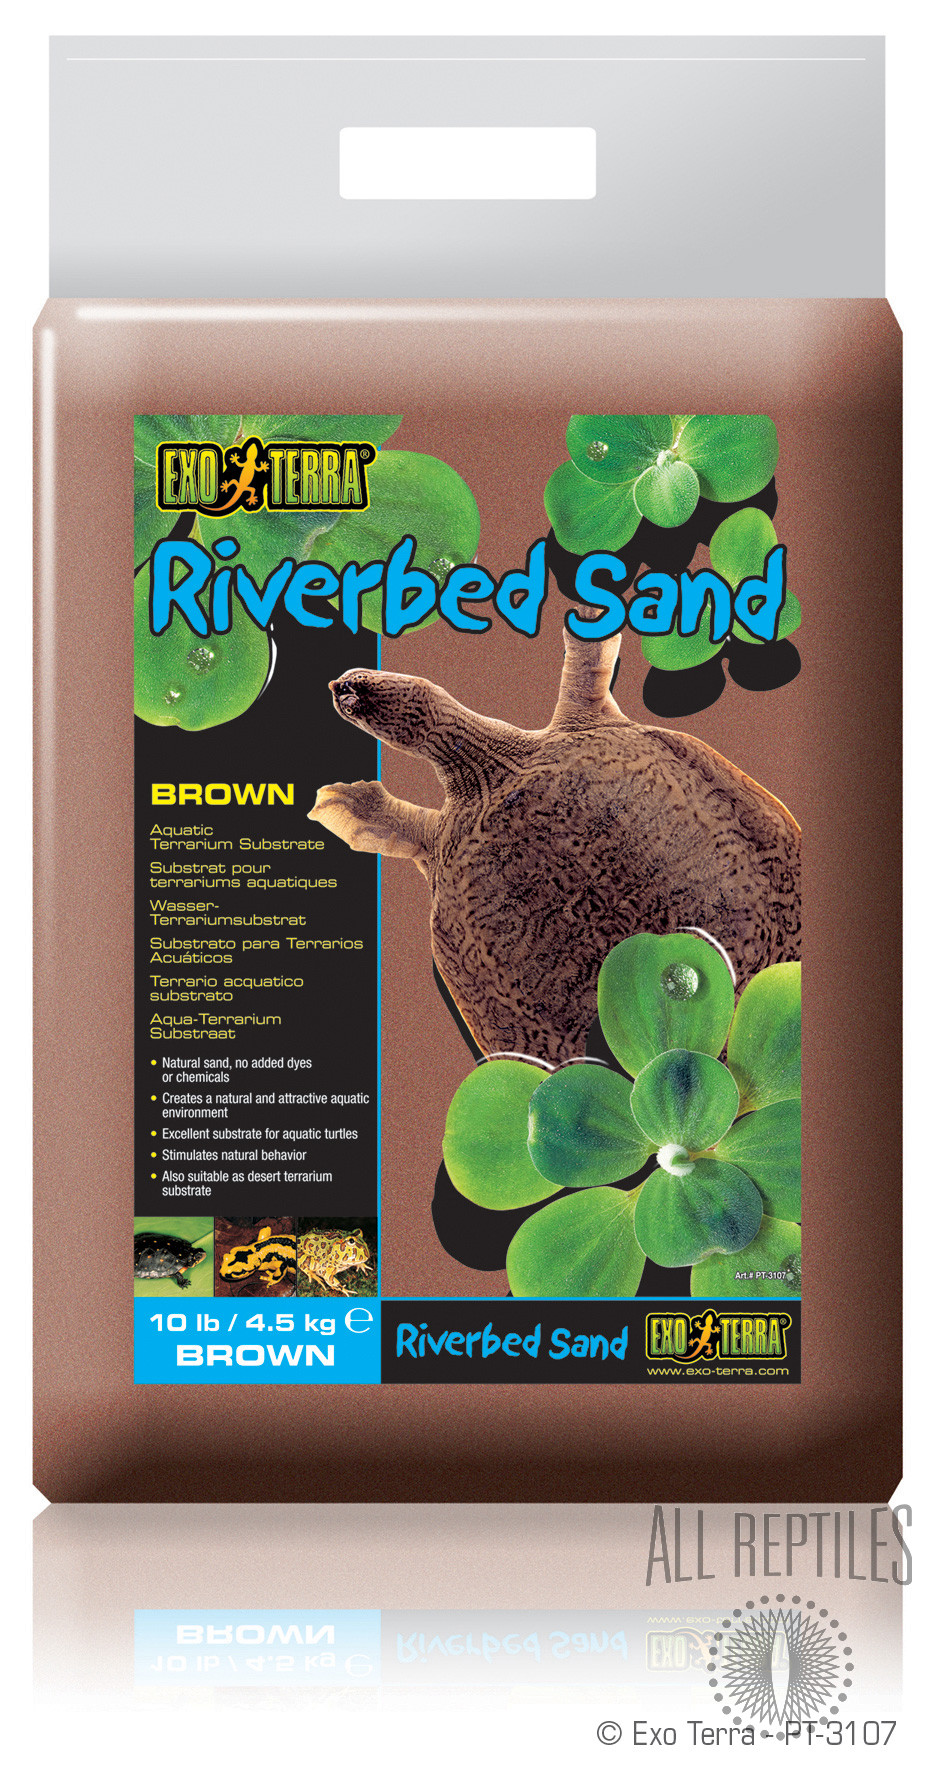 Exo Terra Riverbed Brown Sand